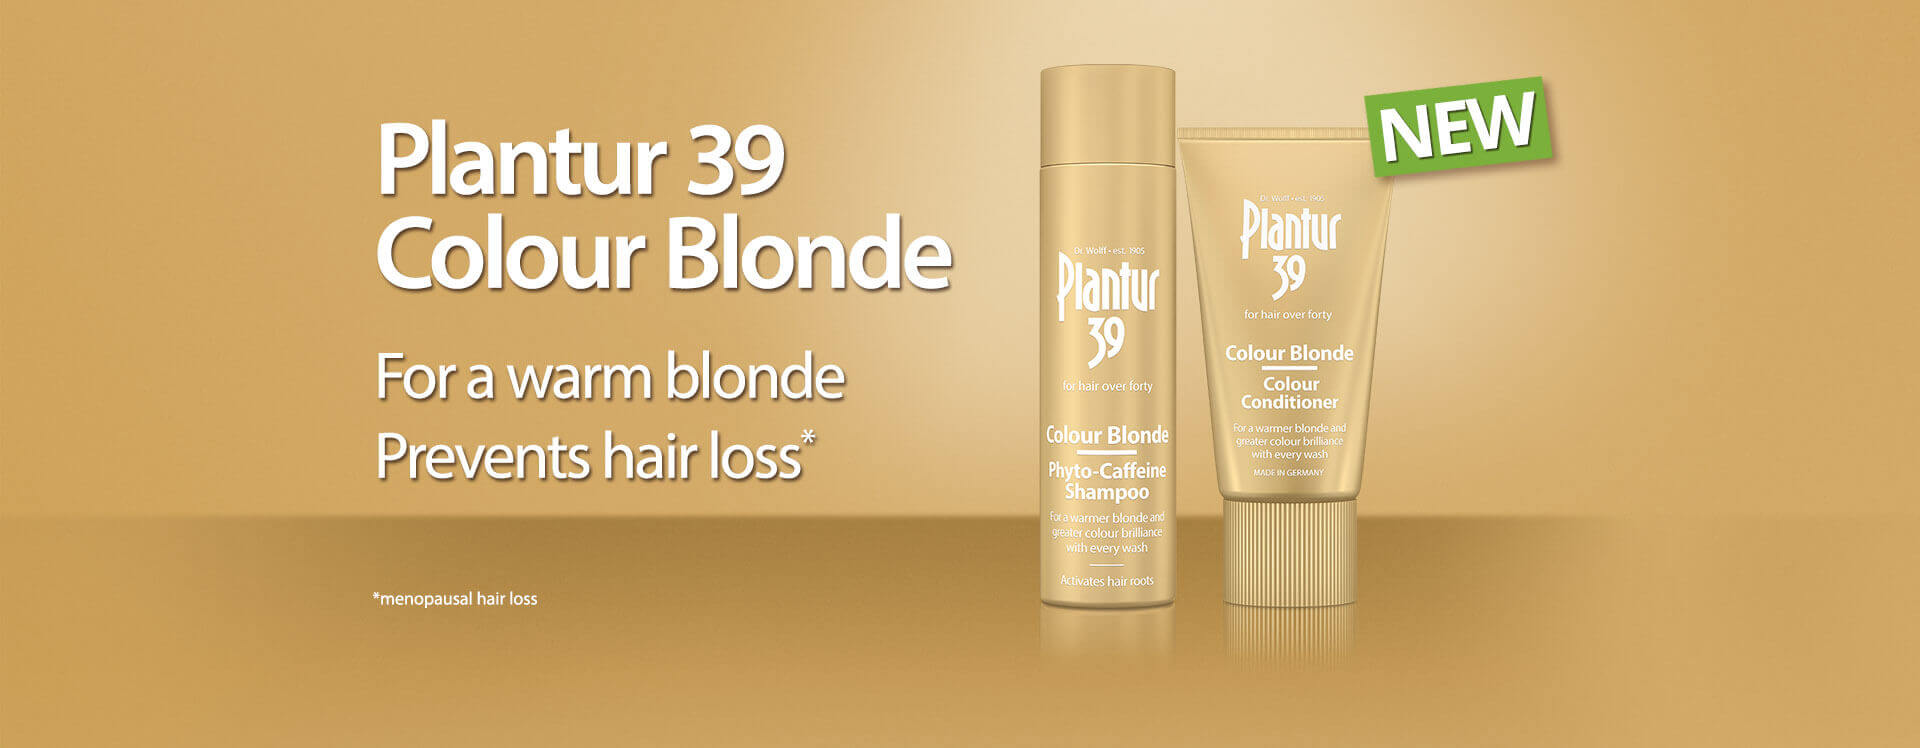 Plantur 39 Colour Blonde for a warm blonde